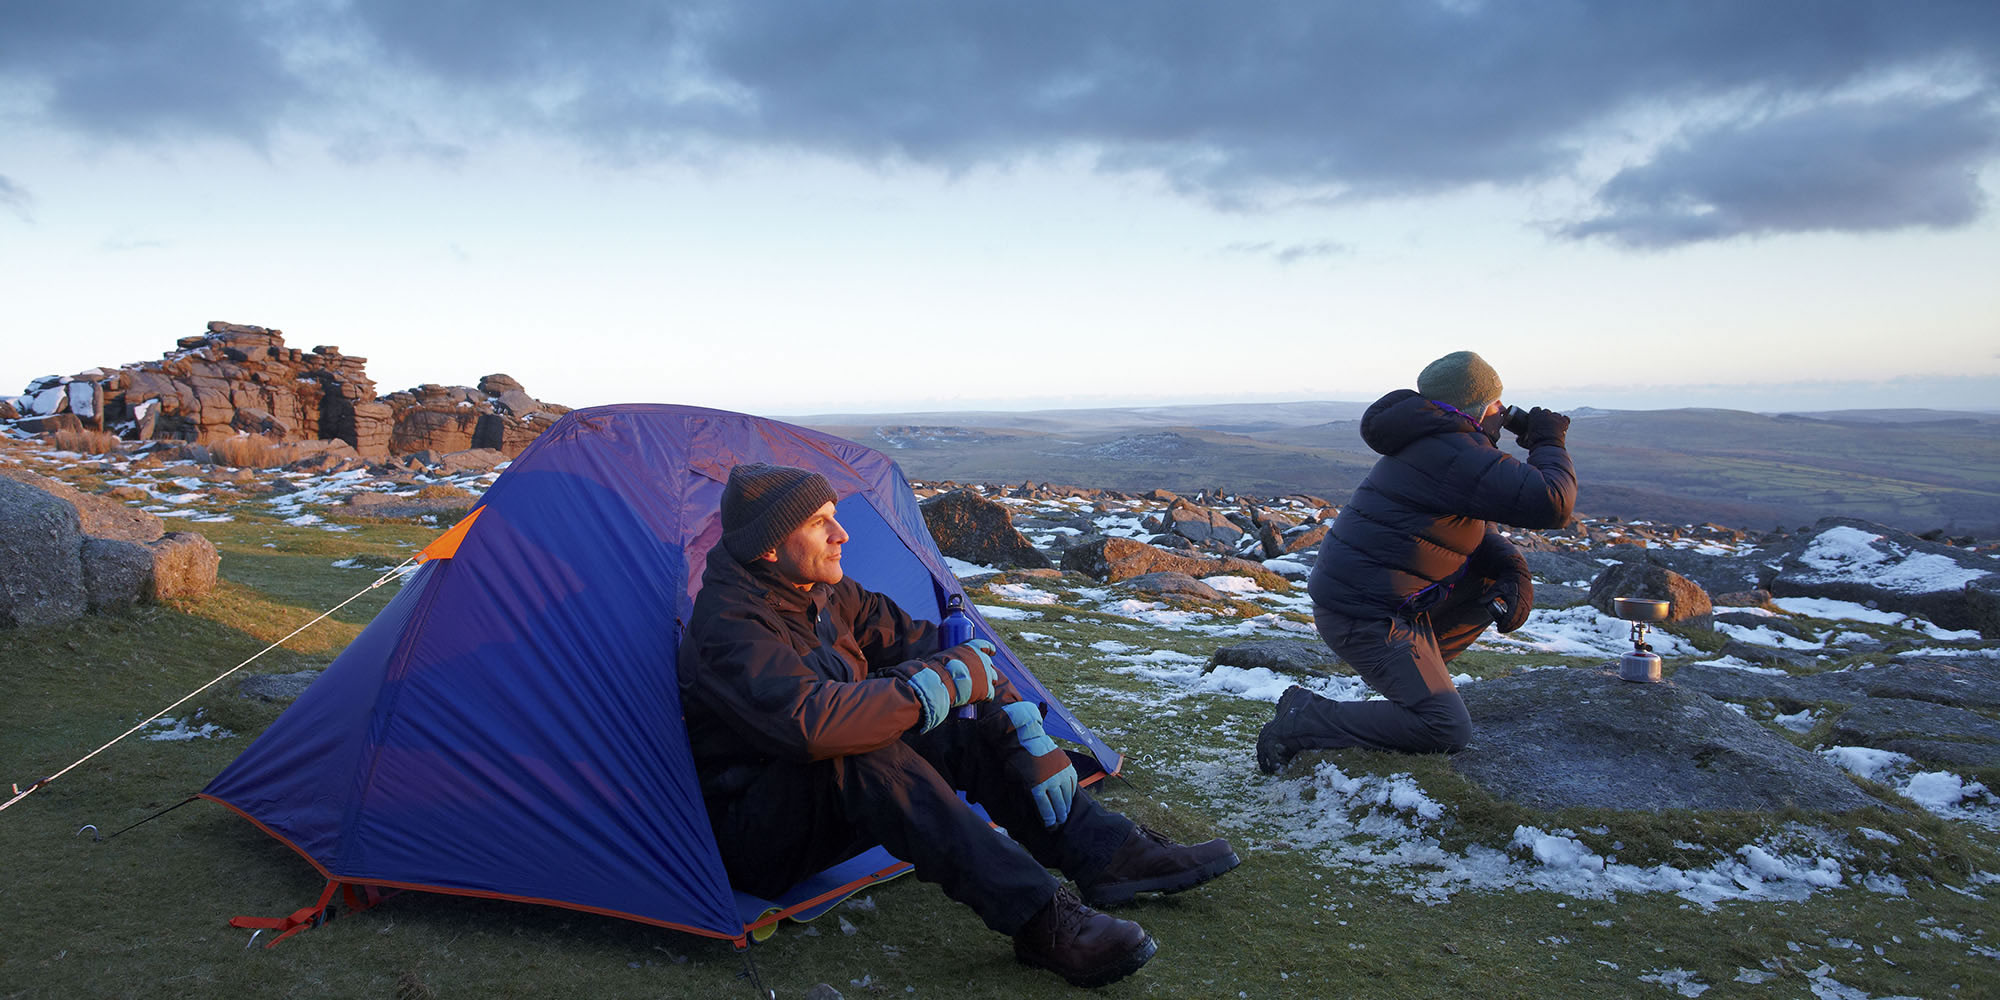 A couple sitting by a tent on a snowy tor